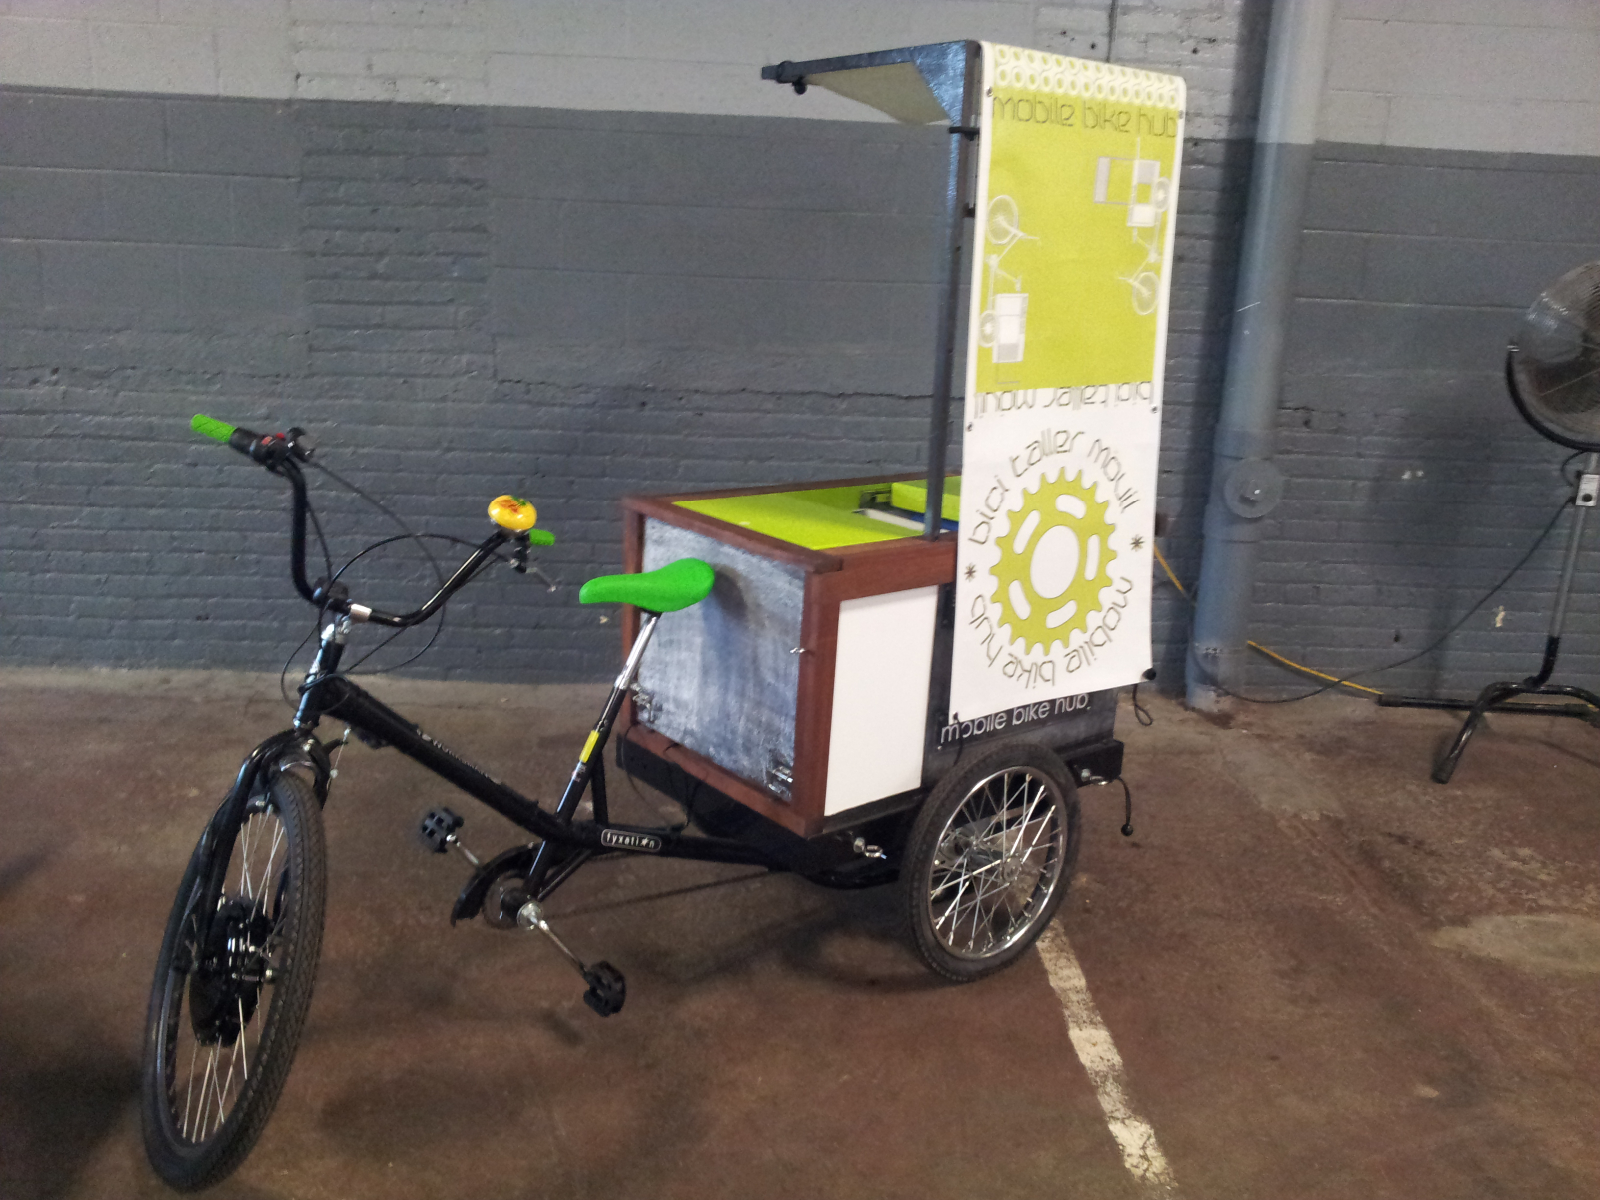 The Mobile Bike Hub